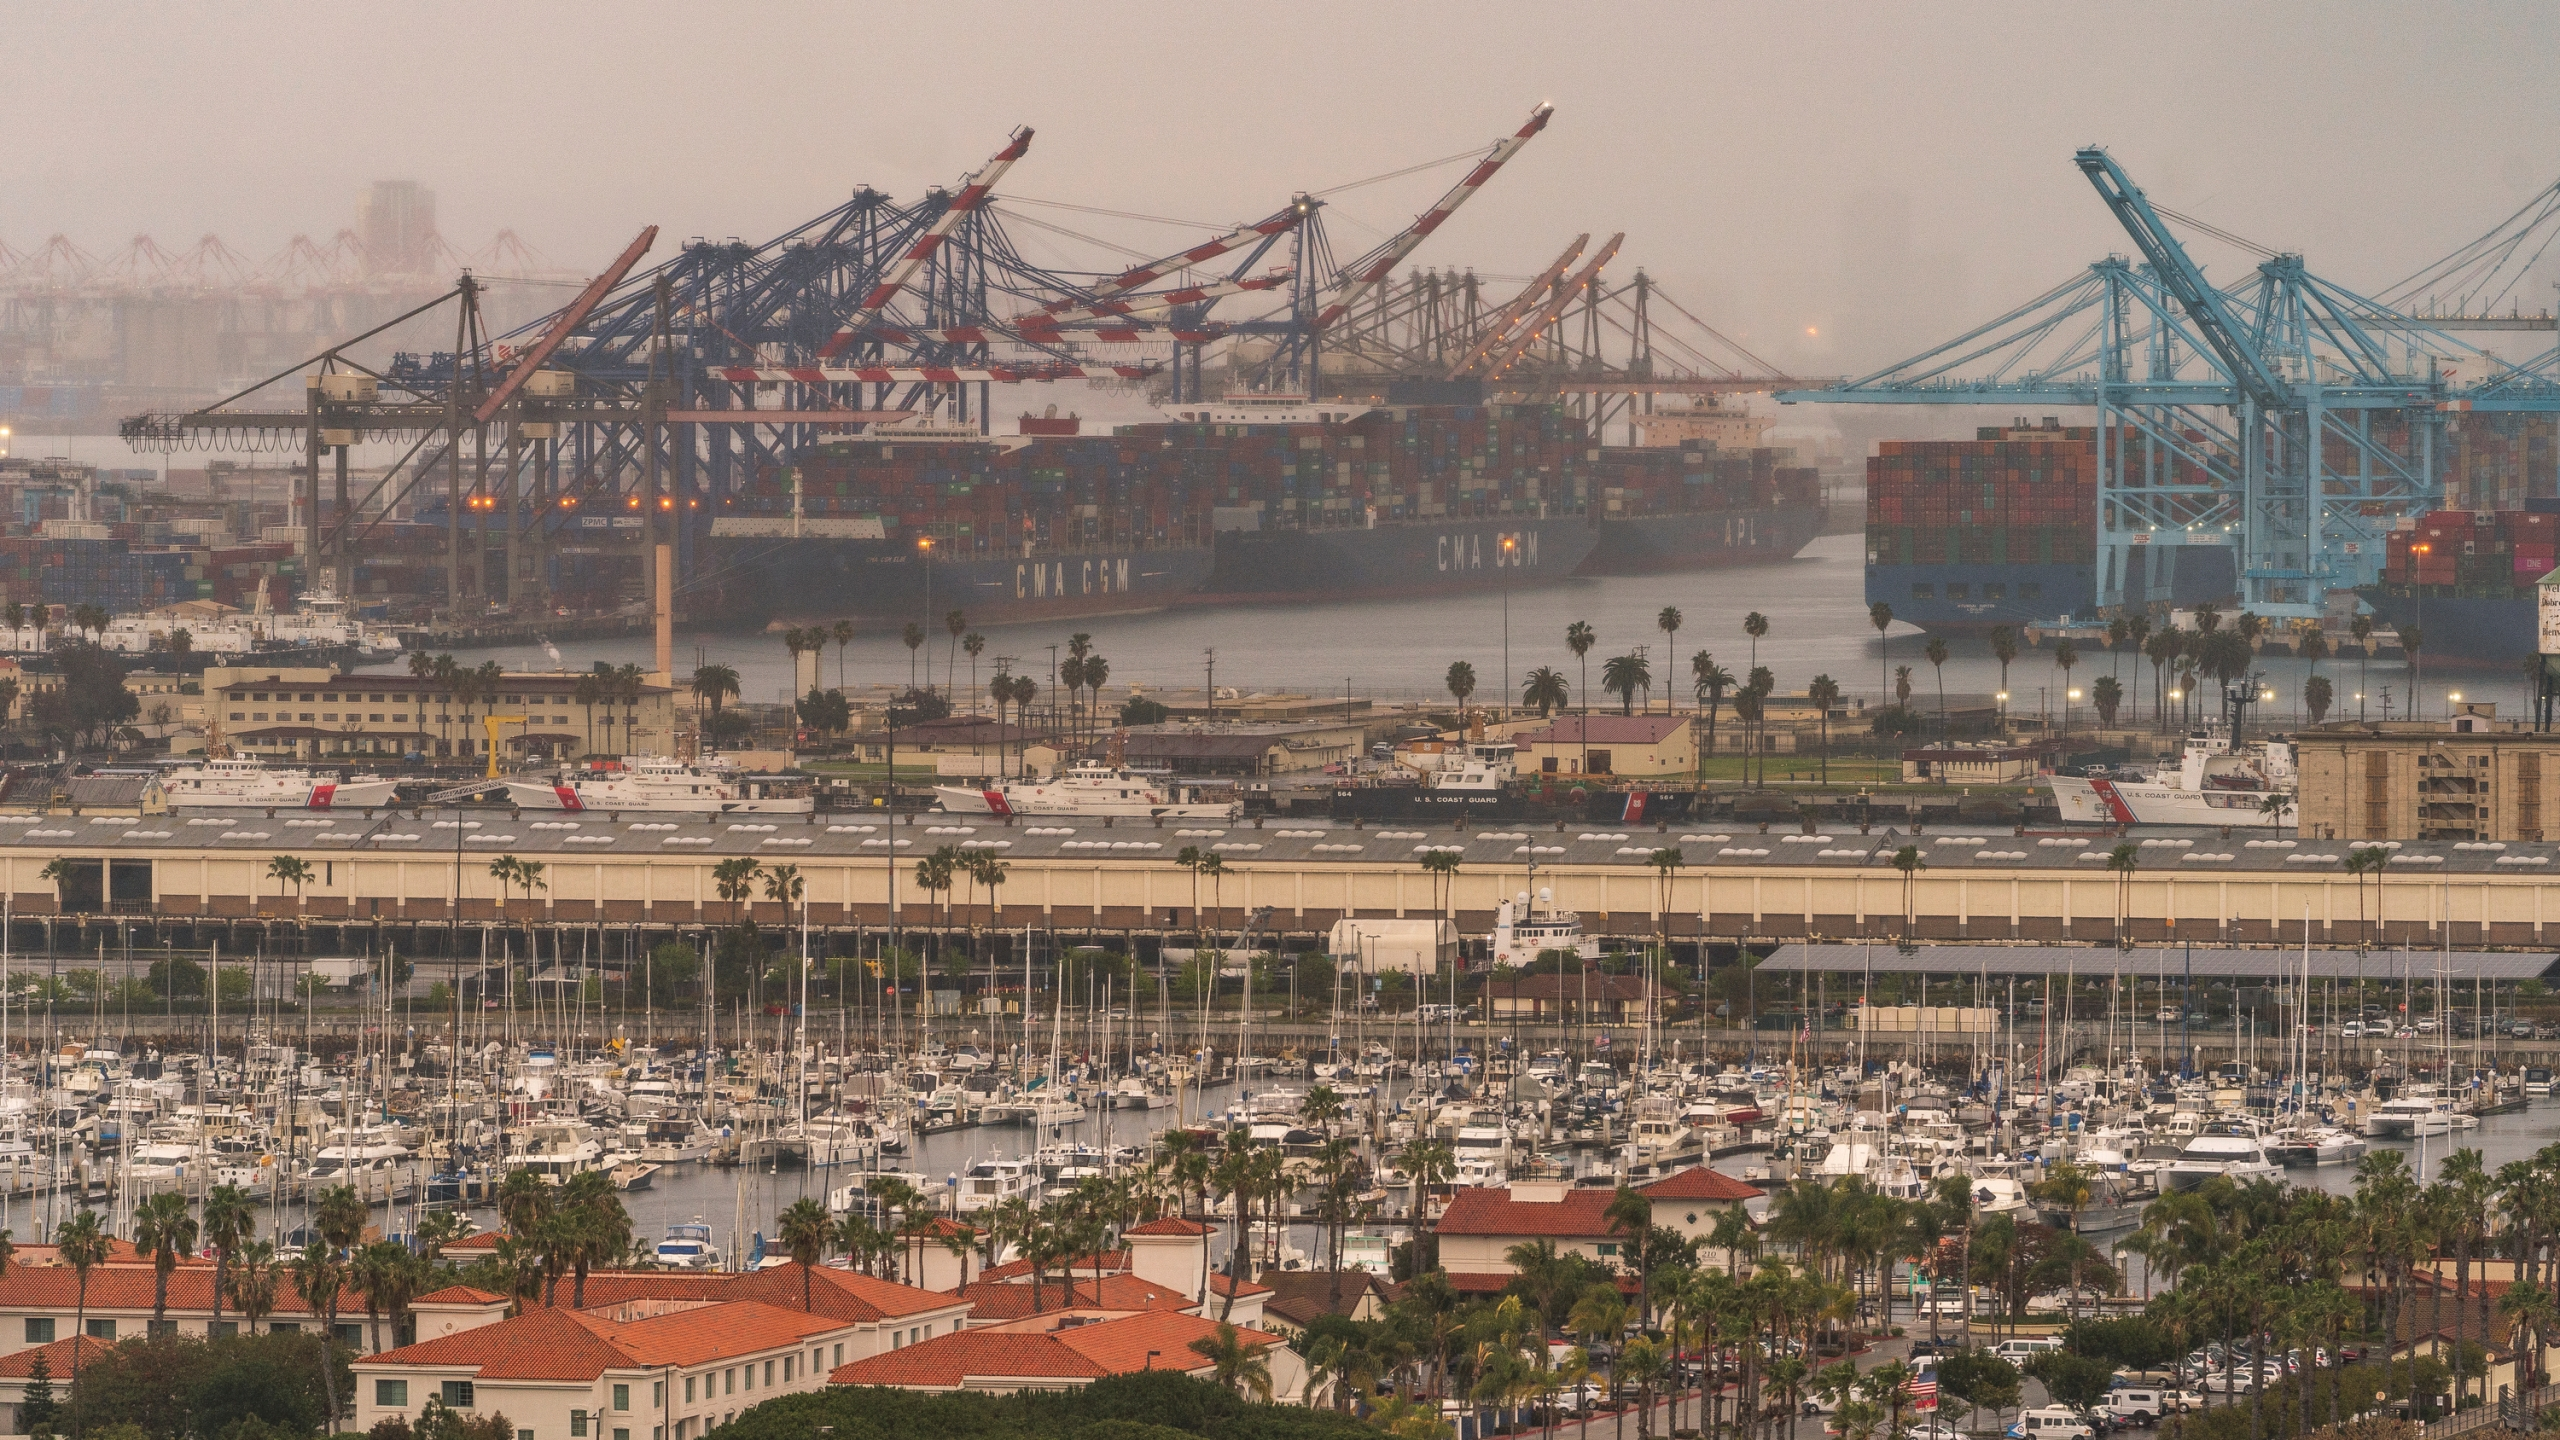 In this Wednesday, March 3, 2021 file photo, container cargo ships are seen docked in the Port of Los Angeles. (AP Photo/Damian Dovarganes, File)